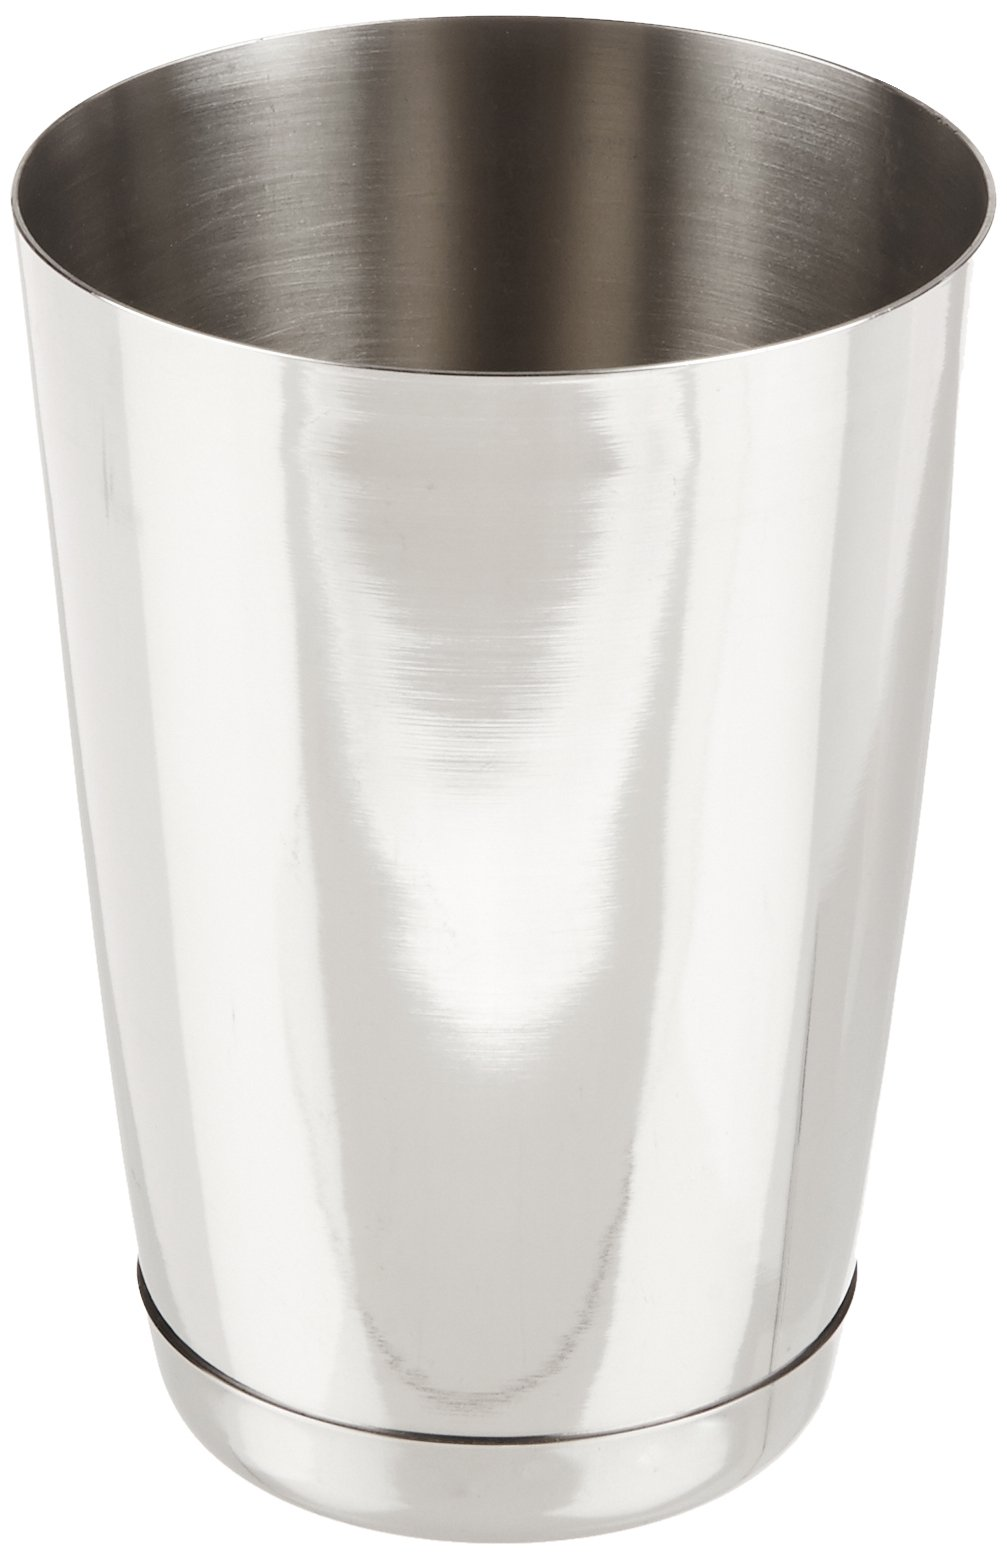 Crestware 15-Ounce Stainless Steel Bar Shaker